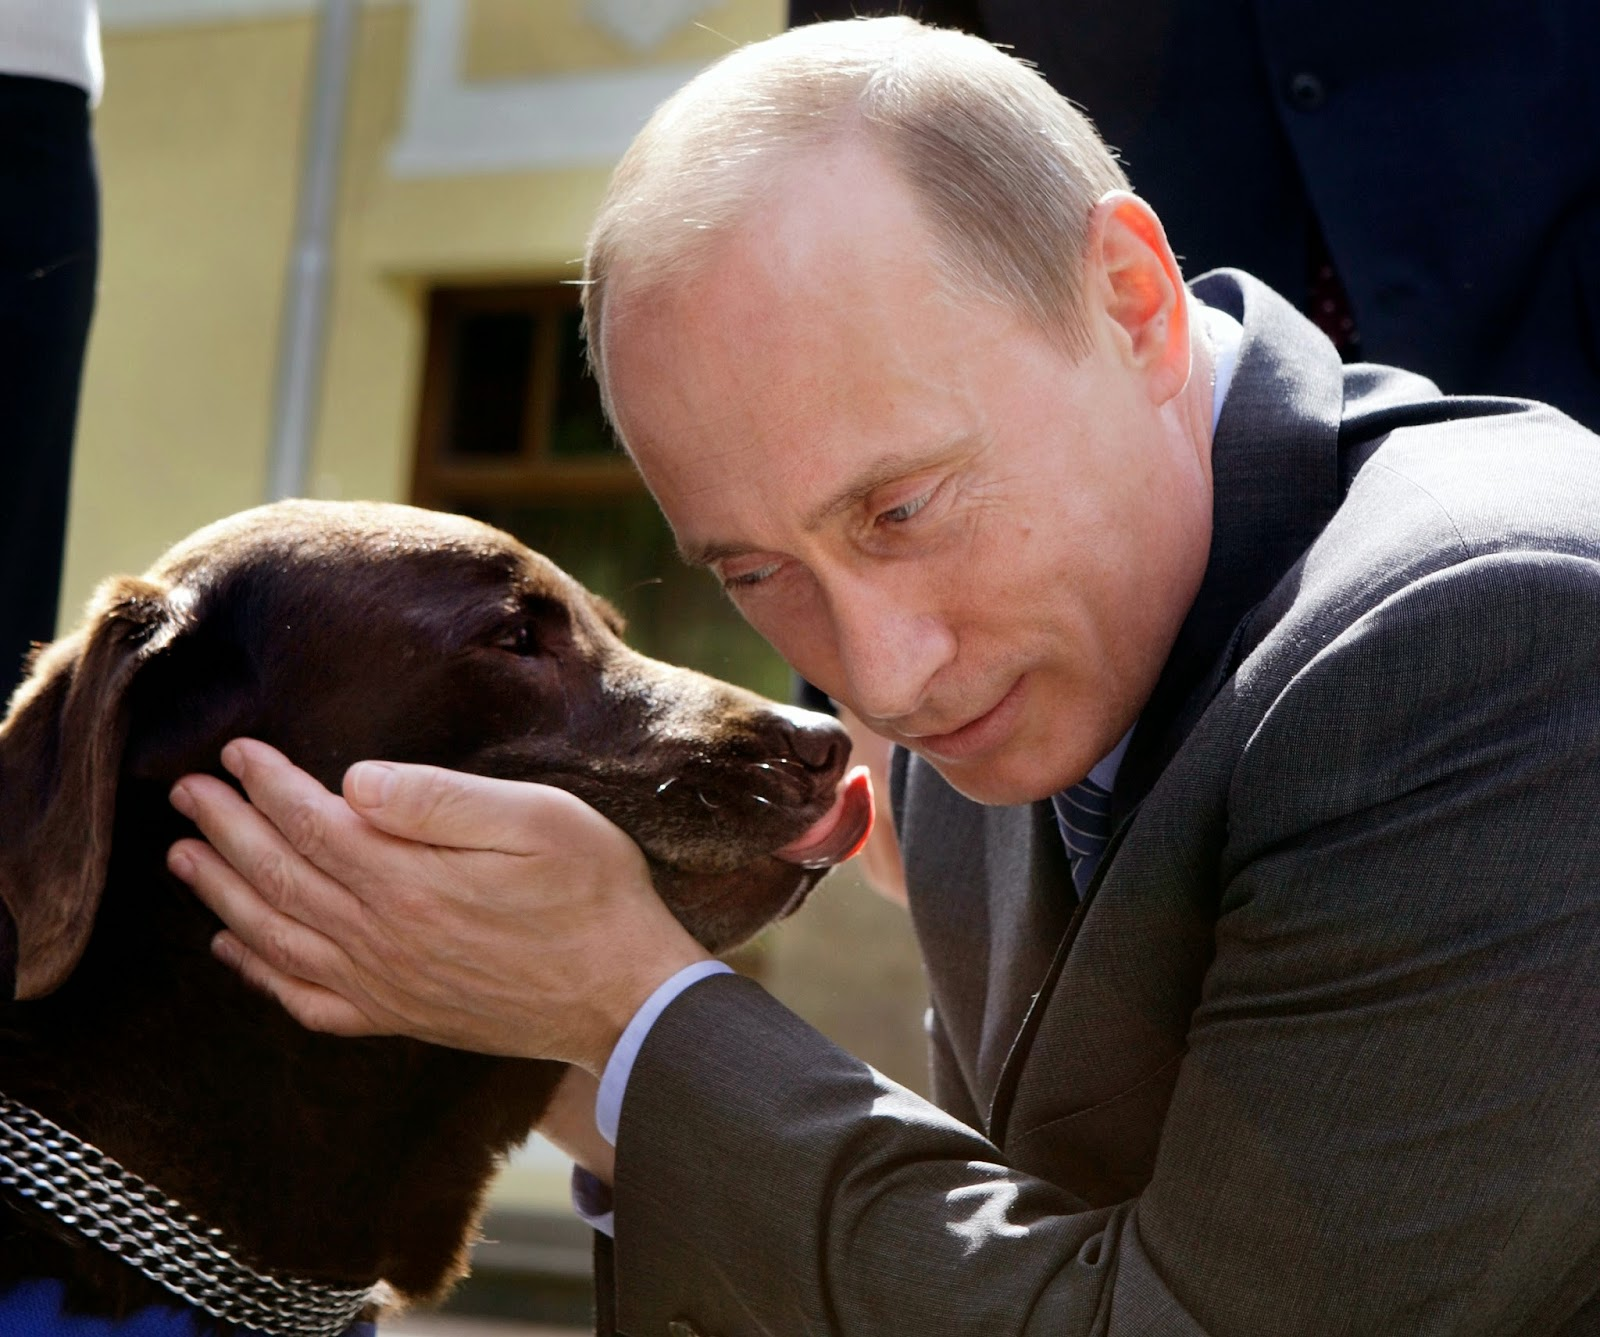 Putin loves his pet dogs and even brings them along to political talks, some suggest to scare fellow world leaders.